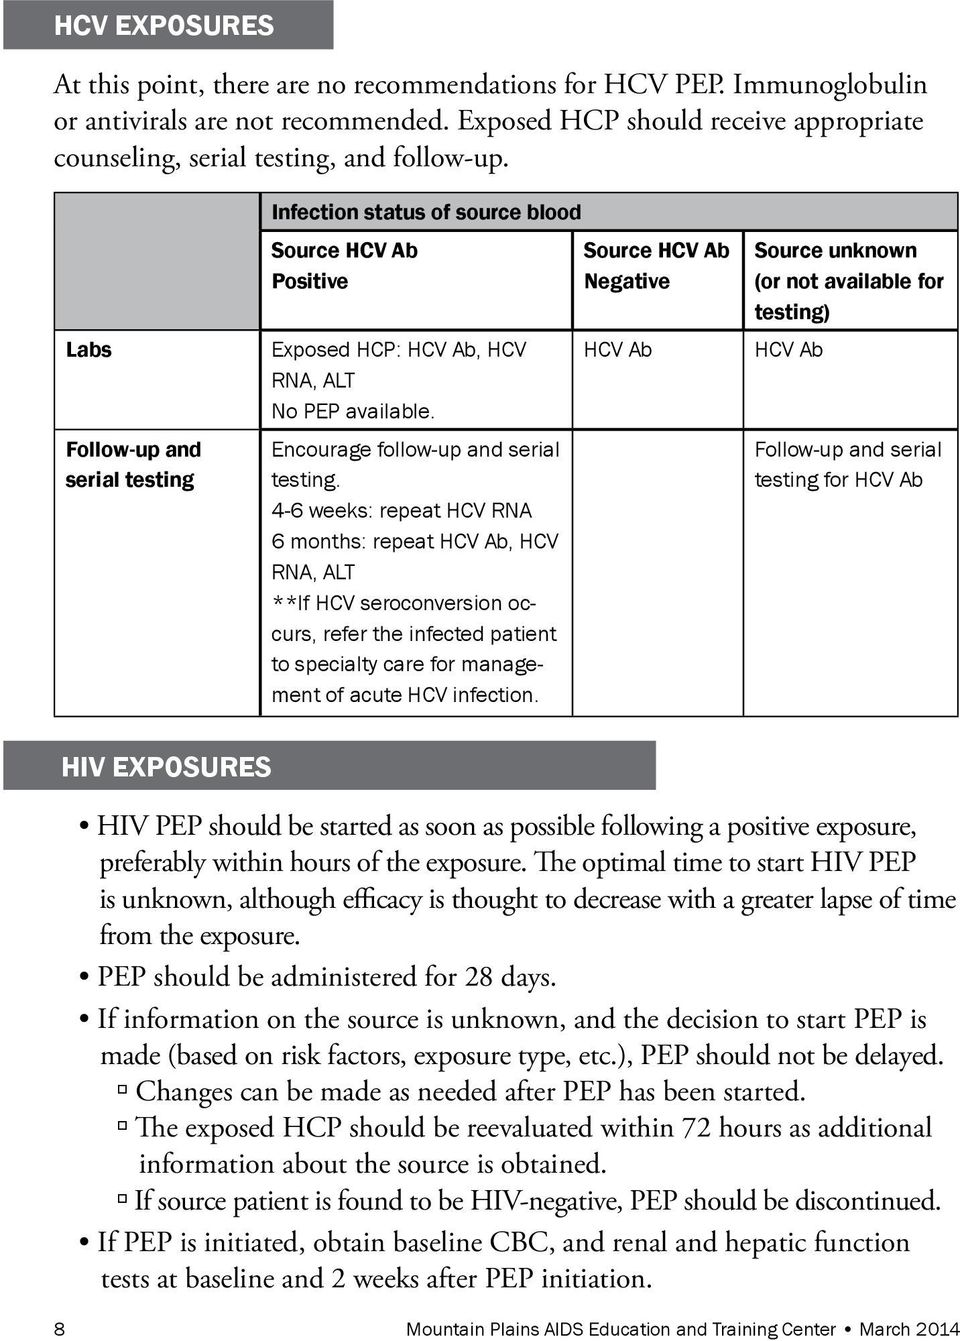 labs follow-up and serial testing infection status of source blood source hcv Ab Positive - - source hcv Ab negative source unknown (or not available for testing) hiv ExPosurEs HIV PEP should be